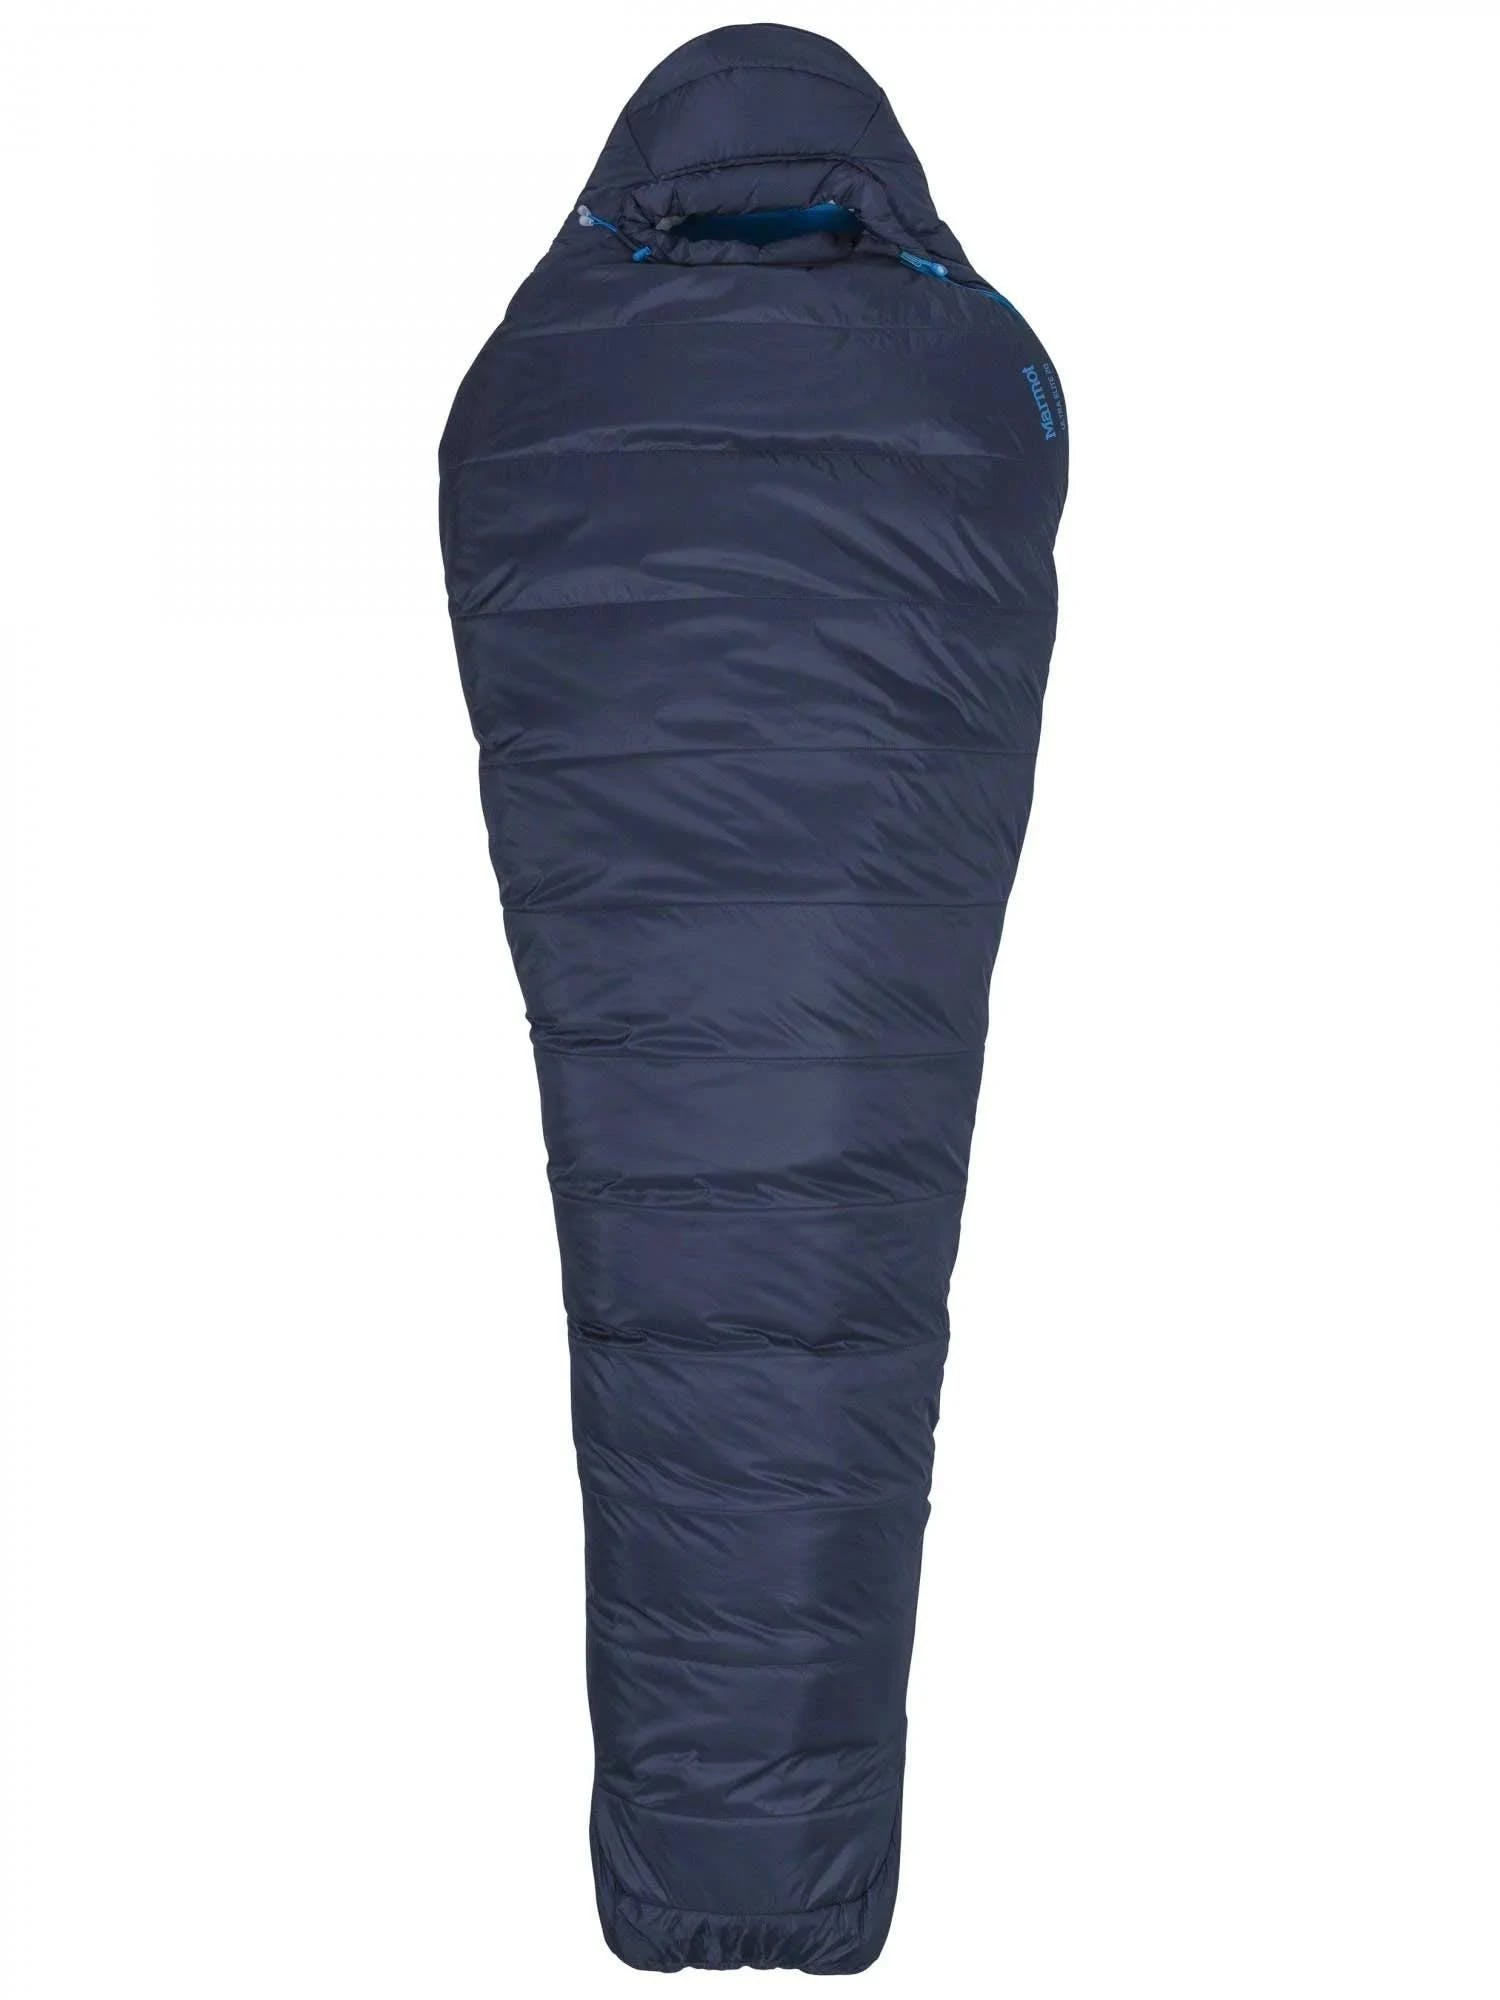 Marmot Ultra Elite 20 Sleeping Bag